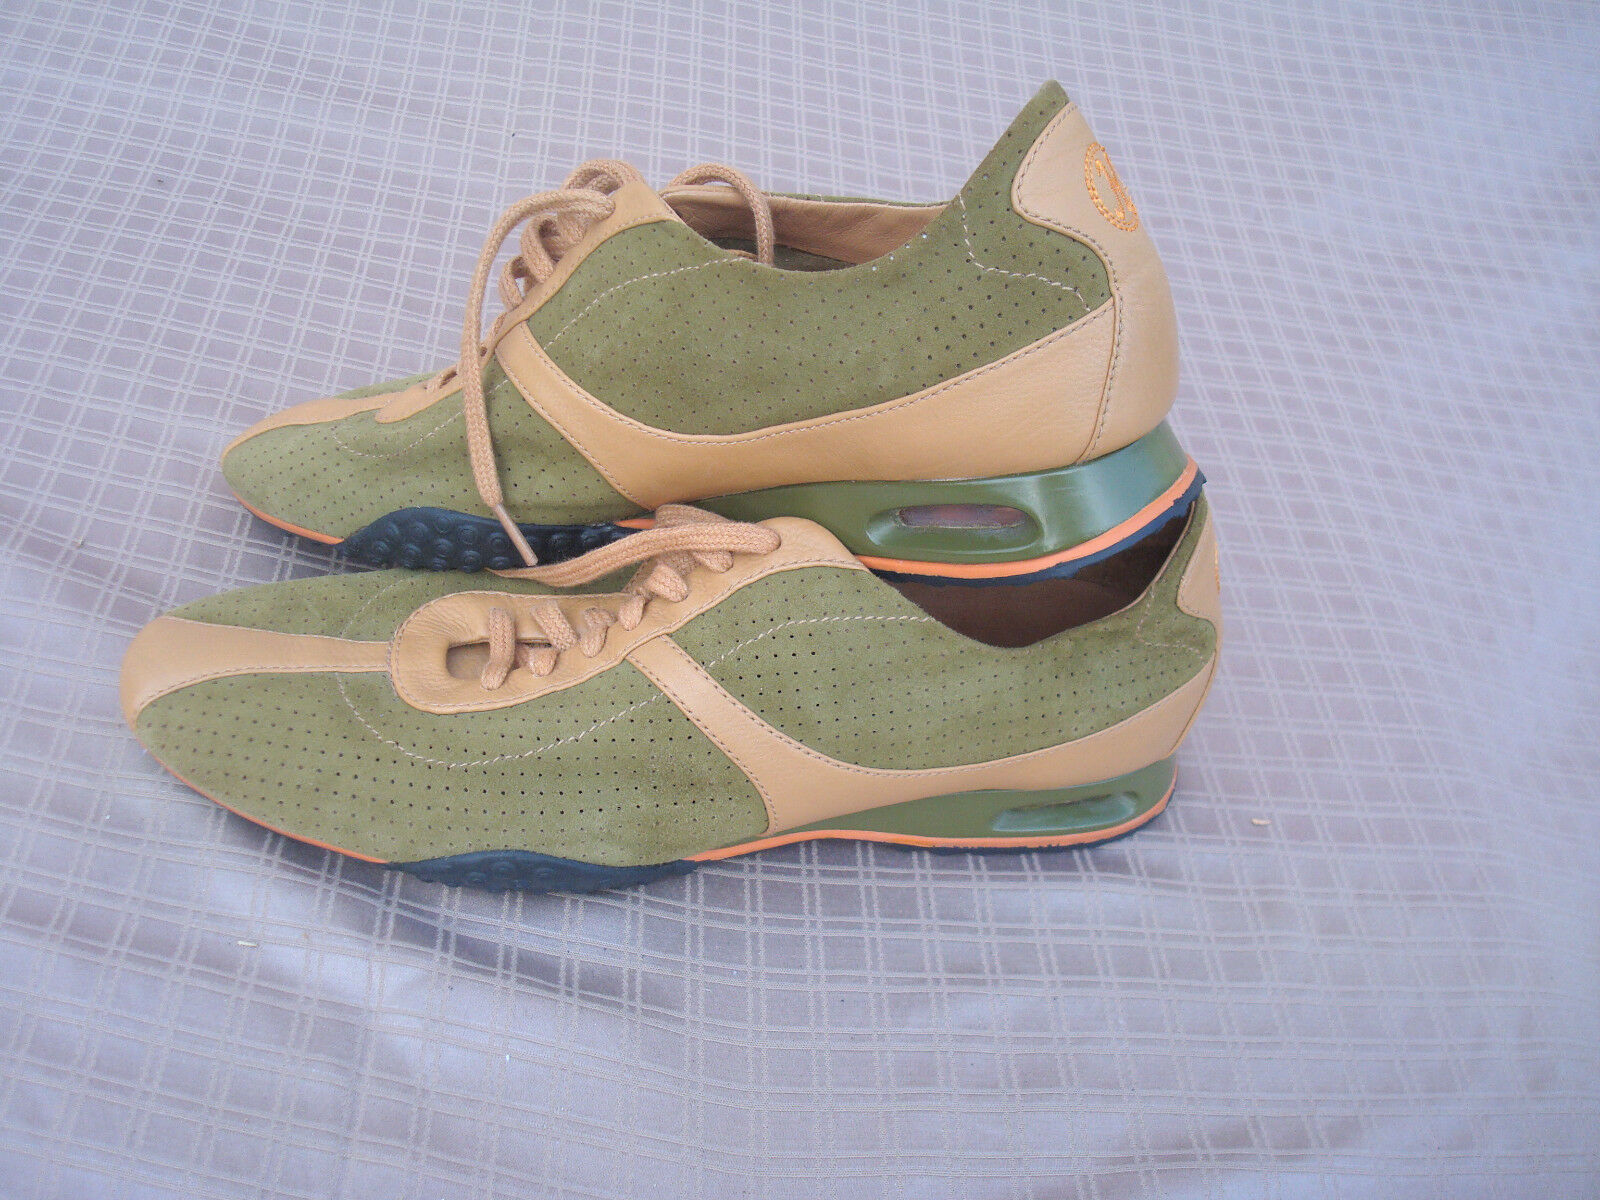 NEU Cole Haan Beige Leder Green Suede Damens Lace up Air Sneakers Schuhes 8